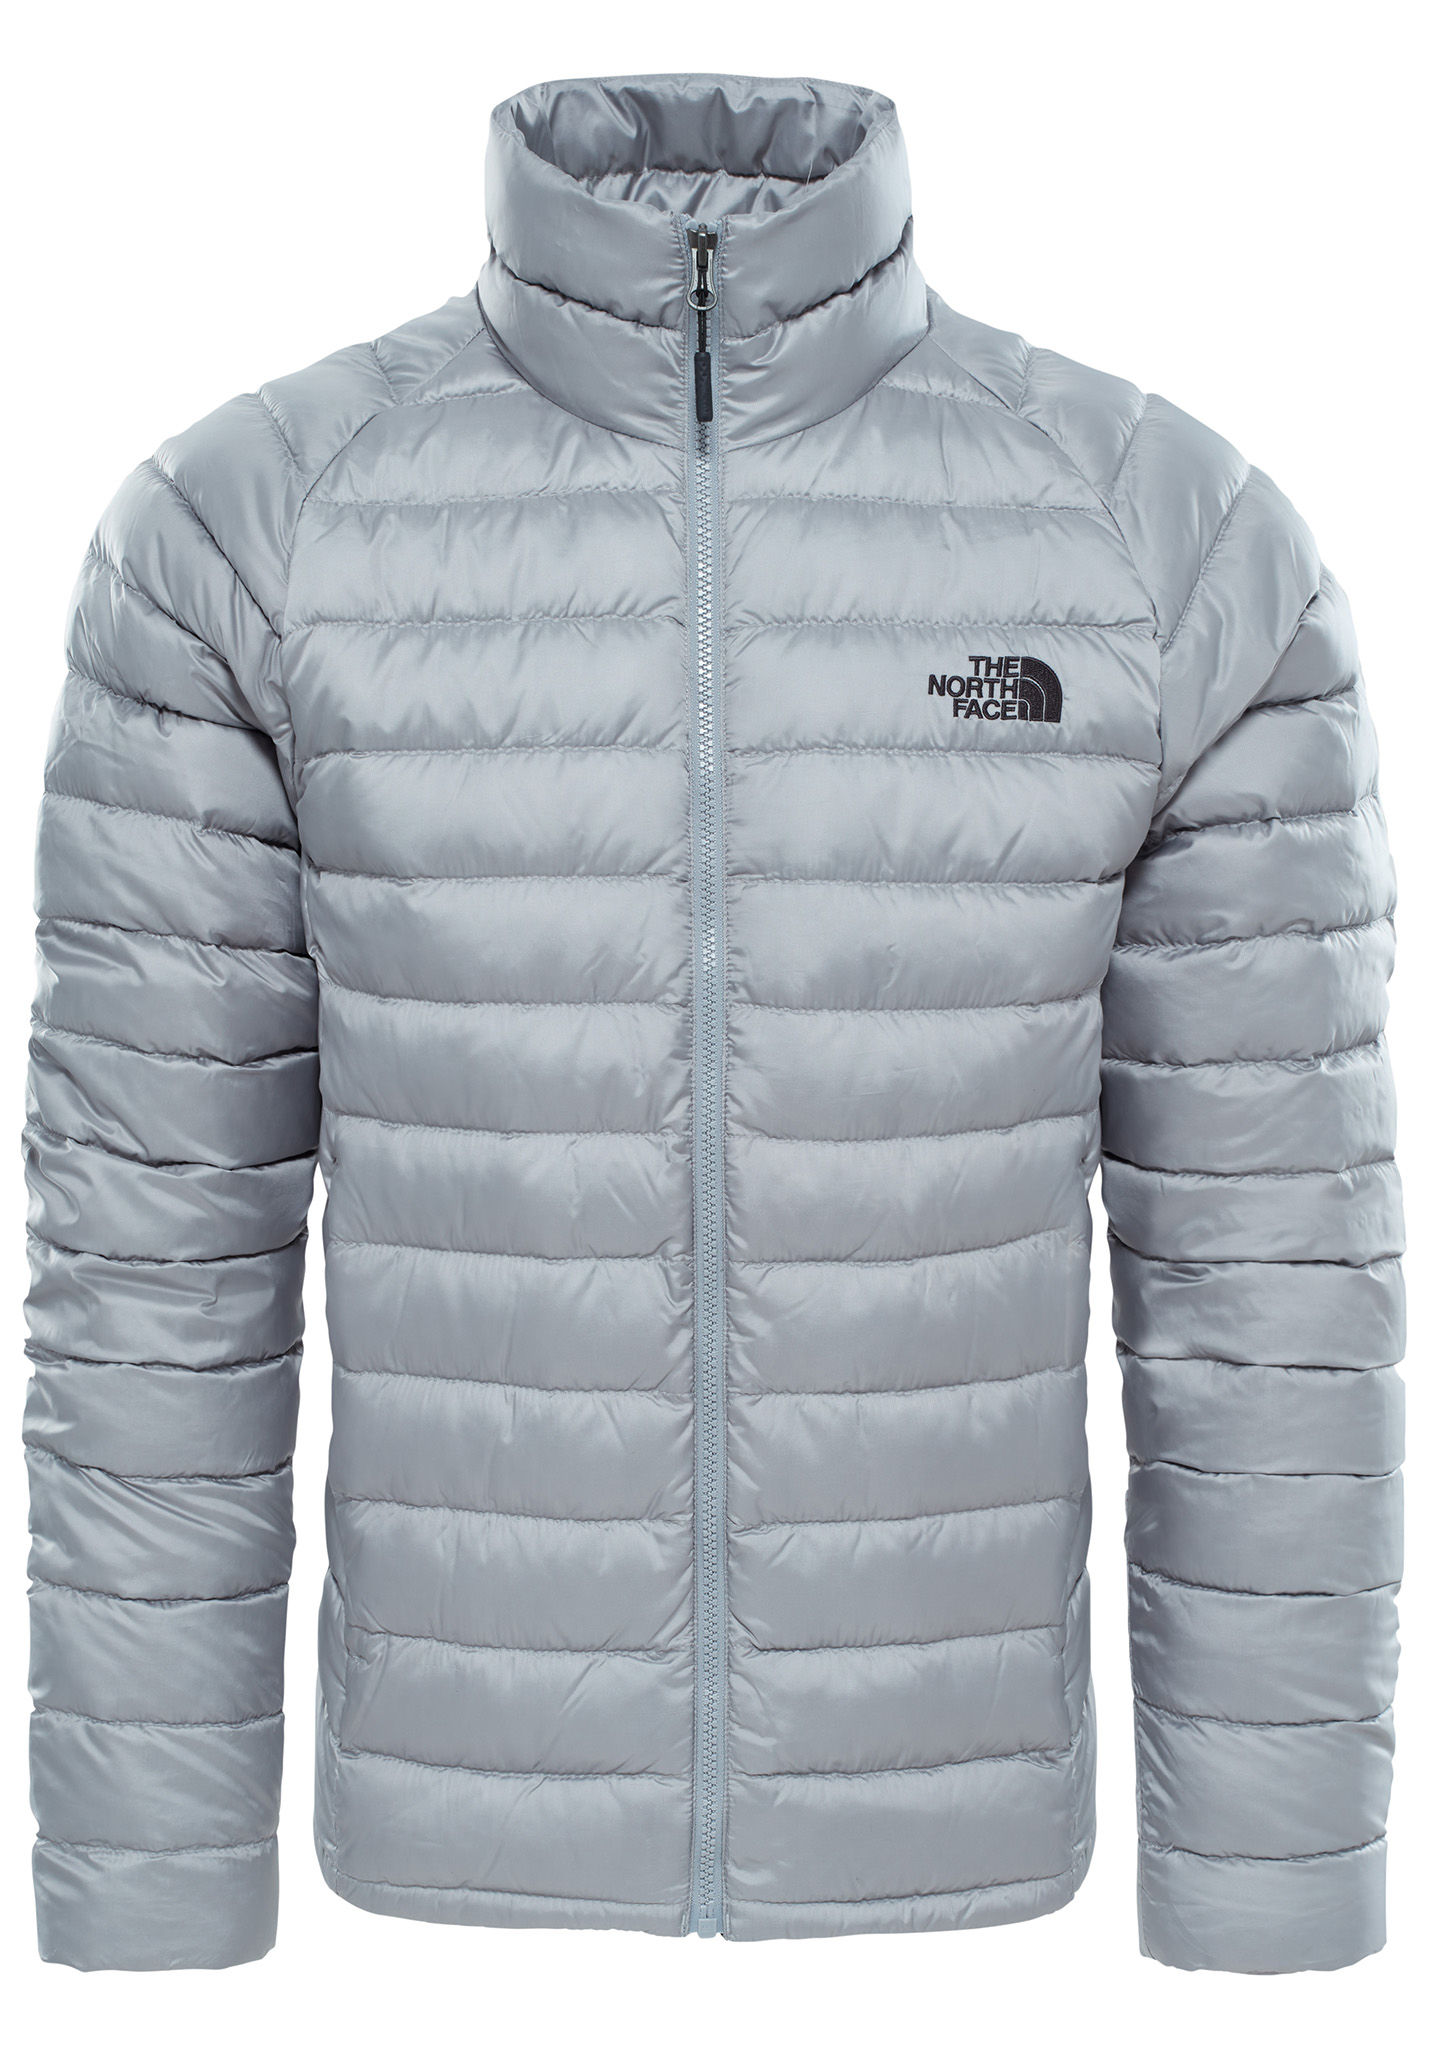 THE NORTH FACE Trevail - Outdoor Jacket for Men - Grey - Planet Sports 65ea3061318a